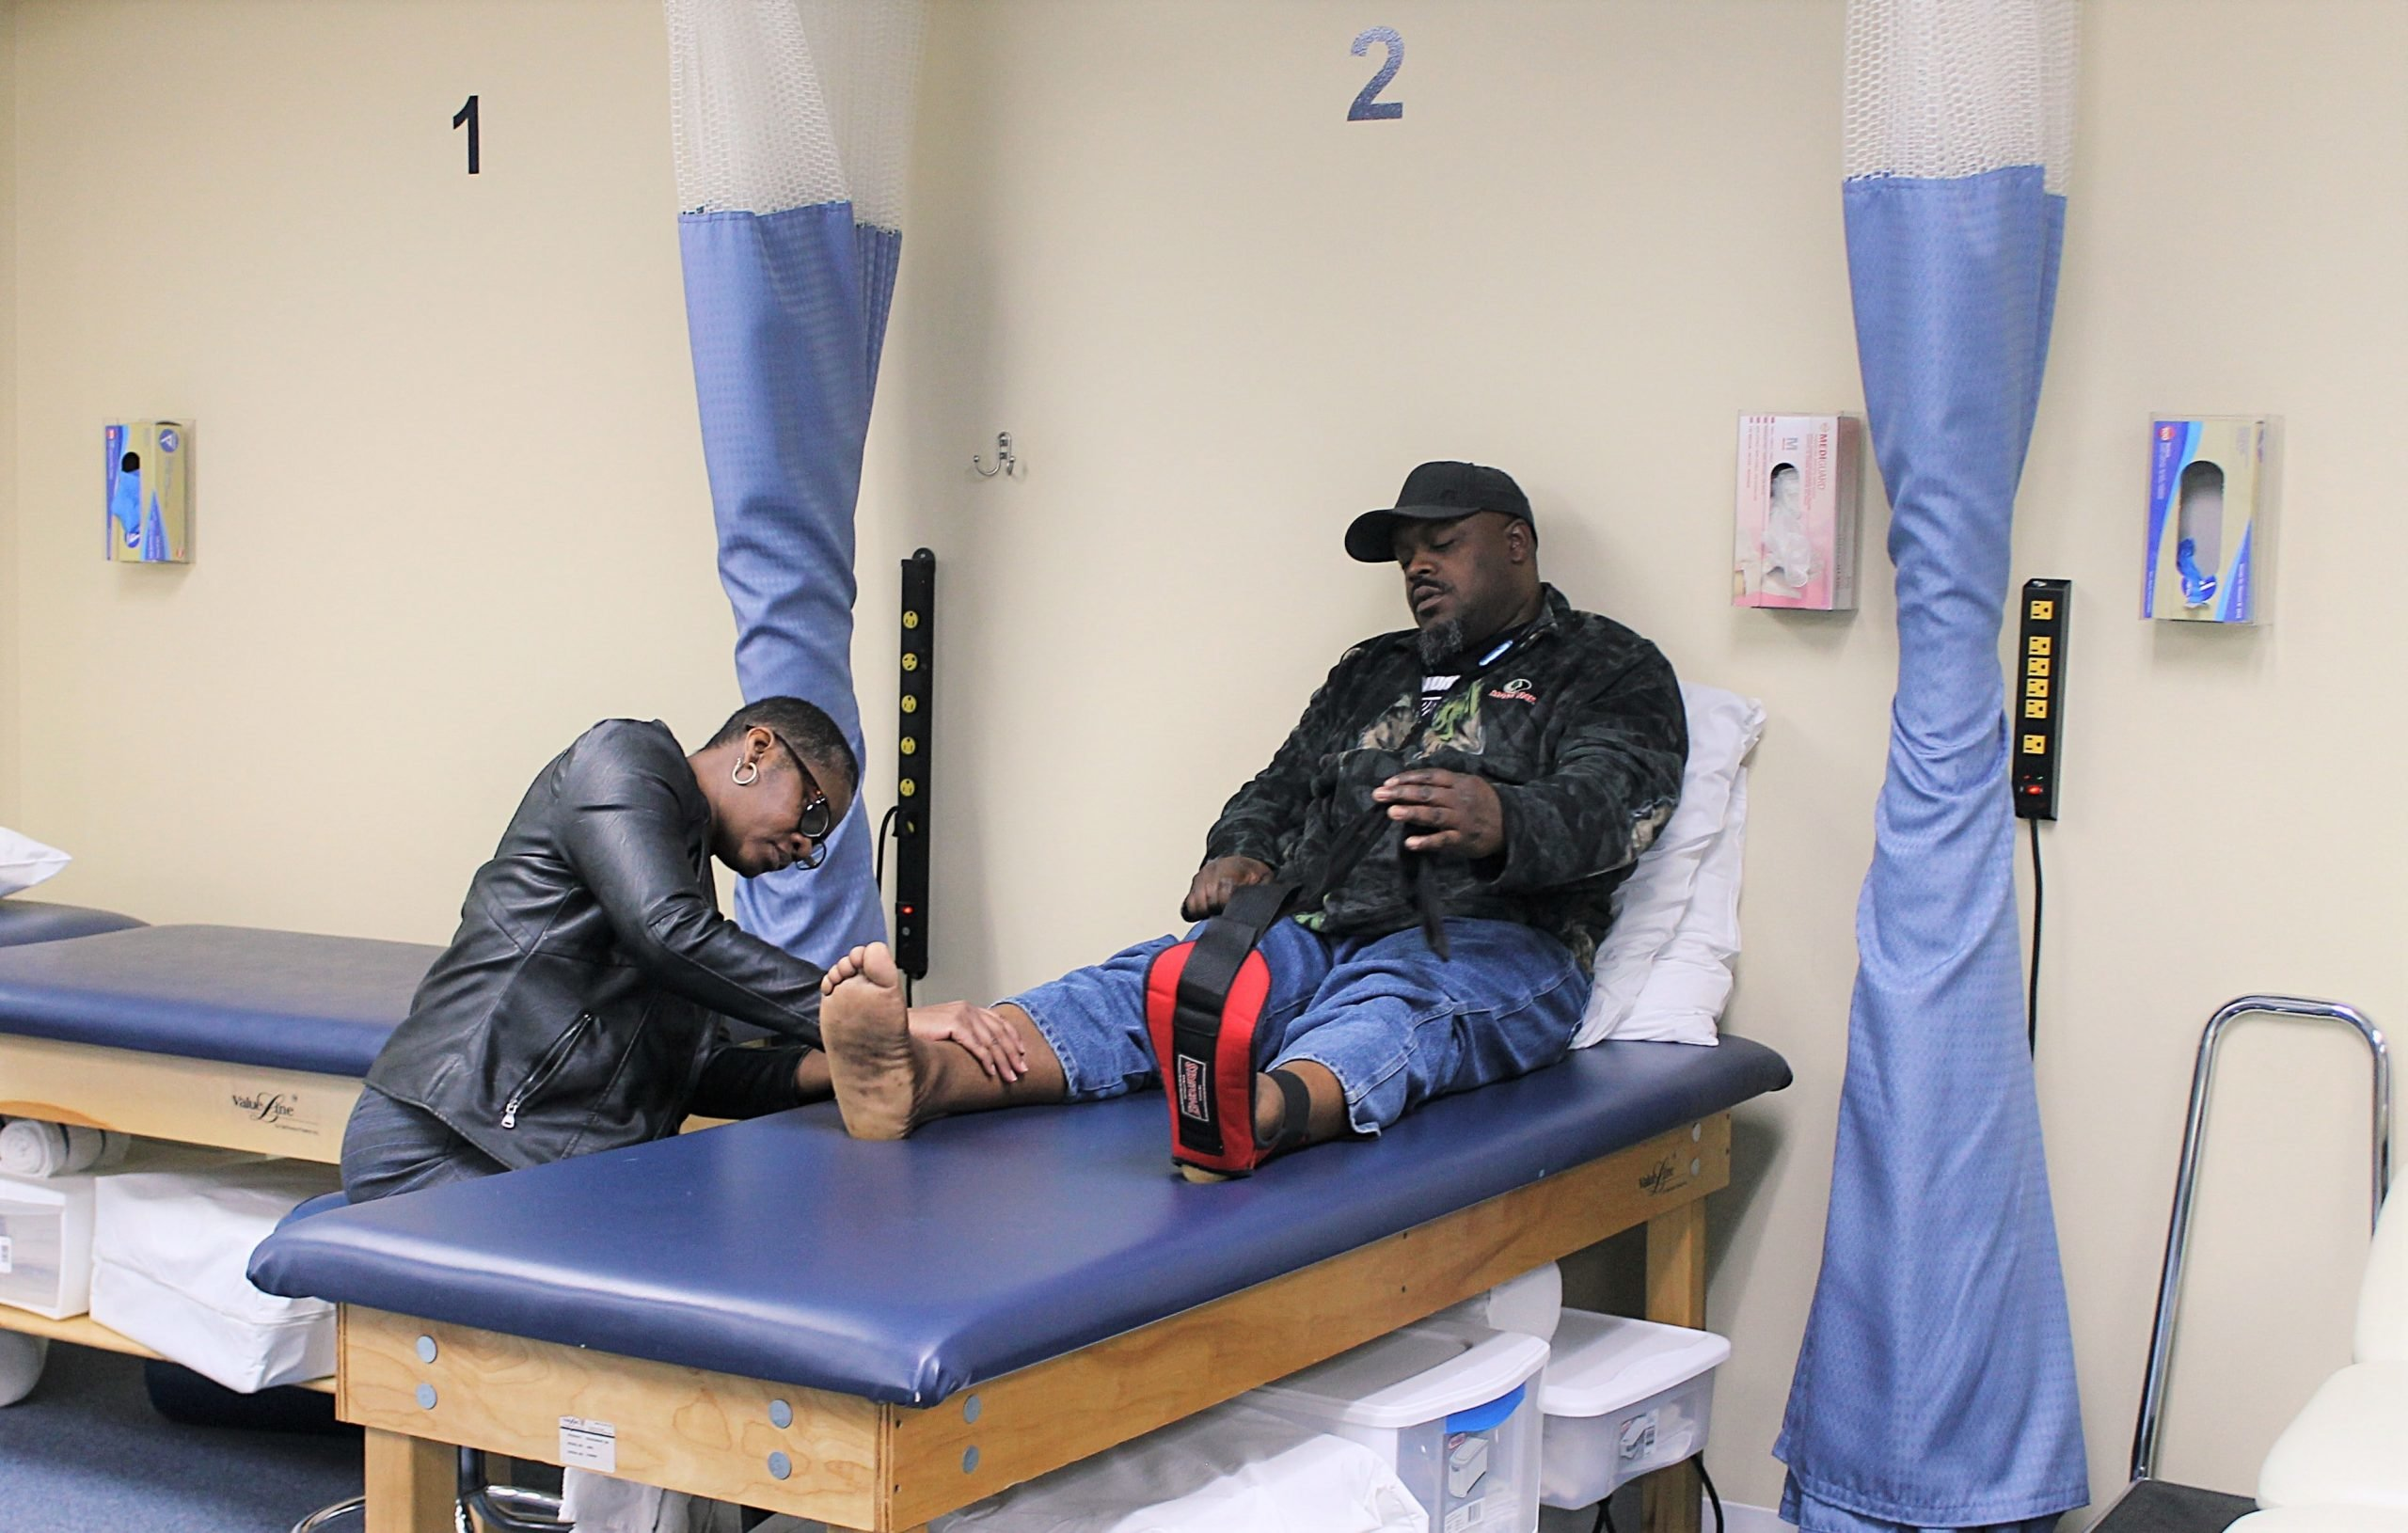 female physical therapist examining leg of patient sitting on examination table